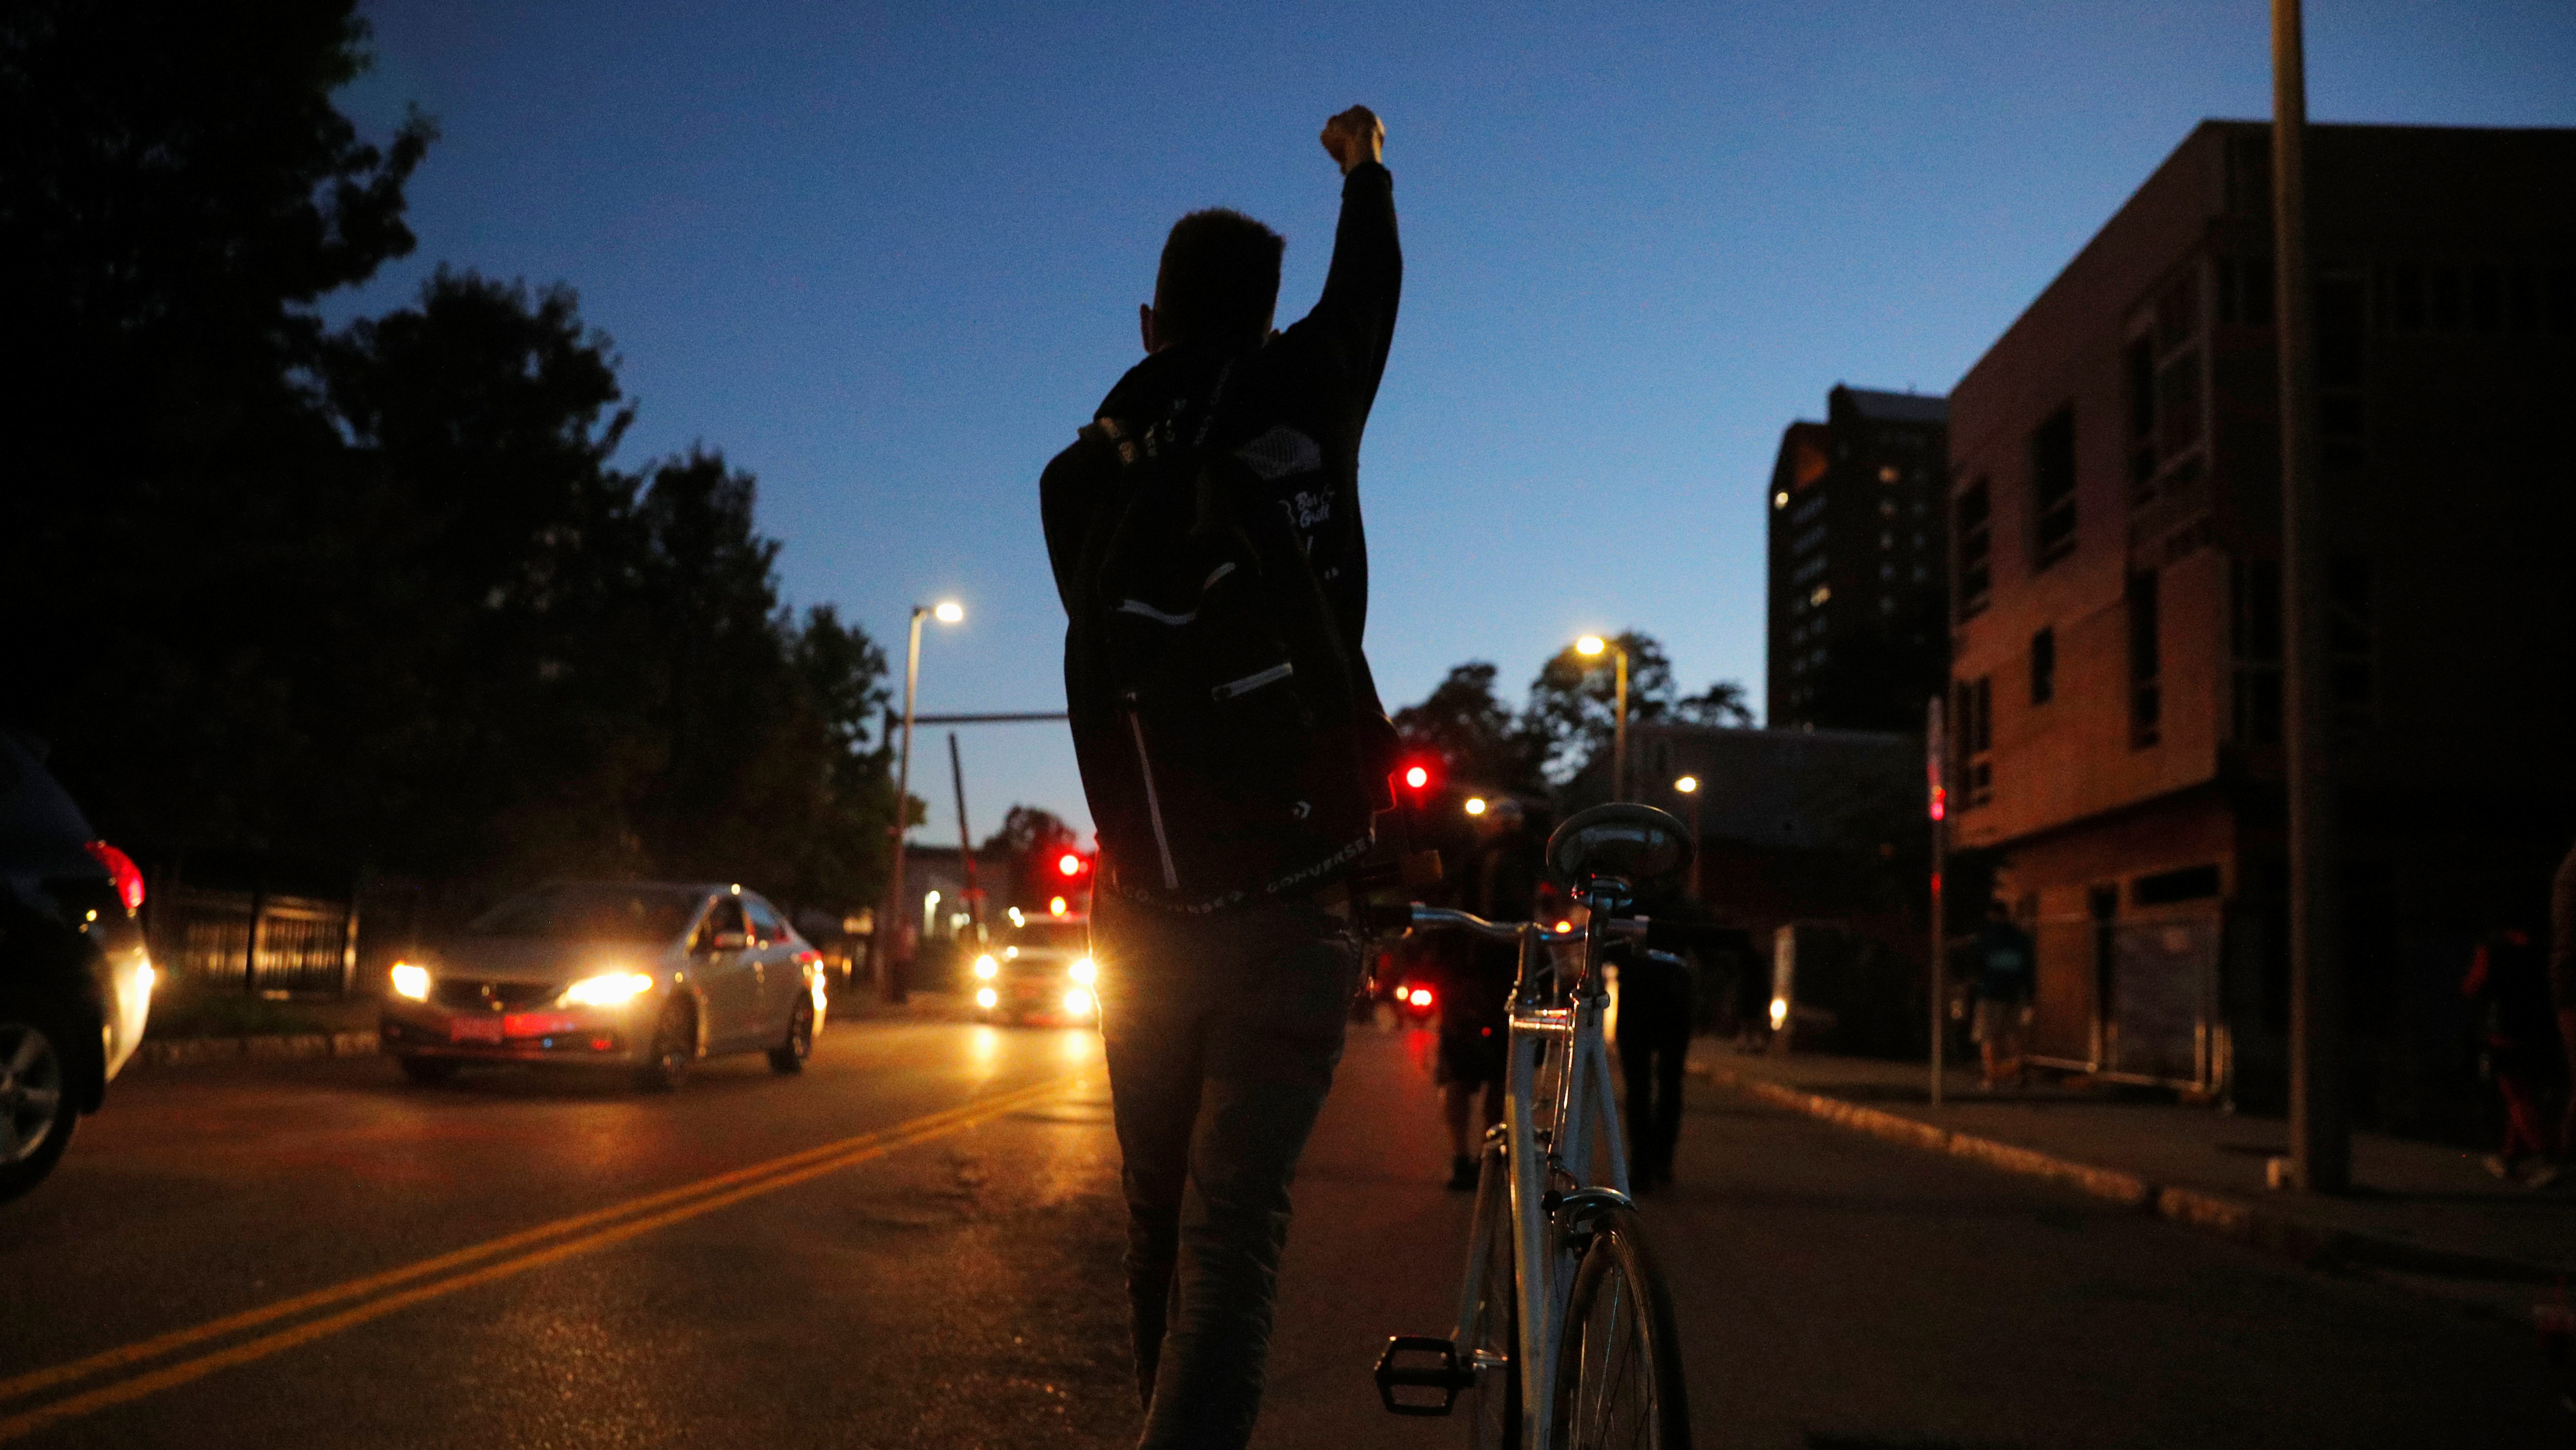 A cyclist gestures as demonstrators march during a rally against racial inequality and to call for justice a week after Black man Jacob Blake was shot several times by police in Kenosha, in Boston, Massachusetts, U.S., August 30, 2020.